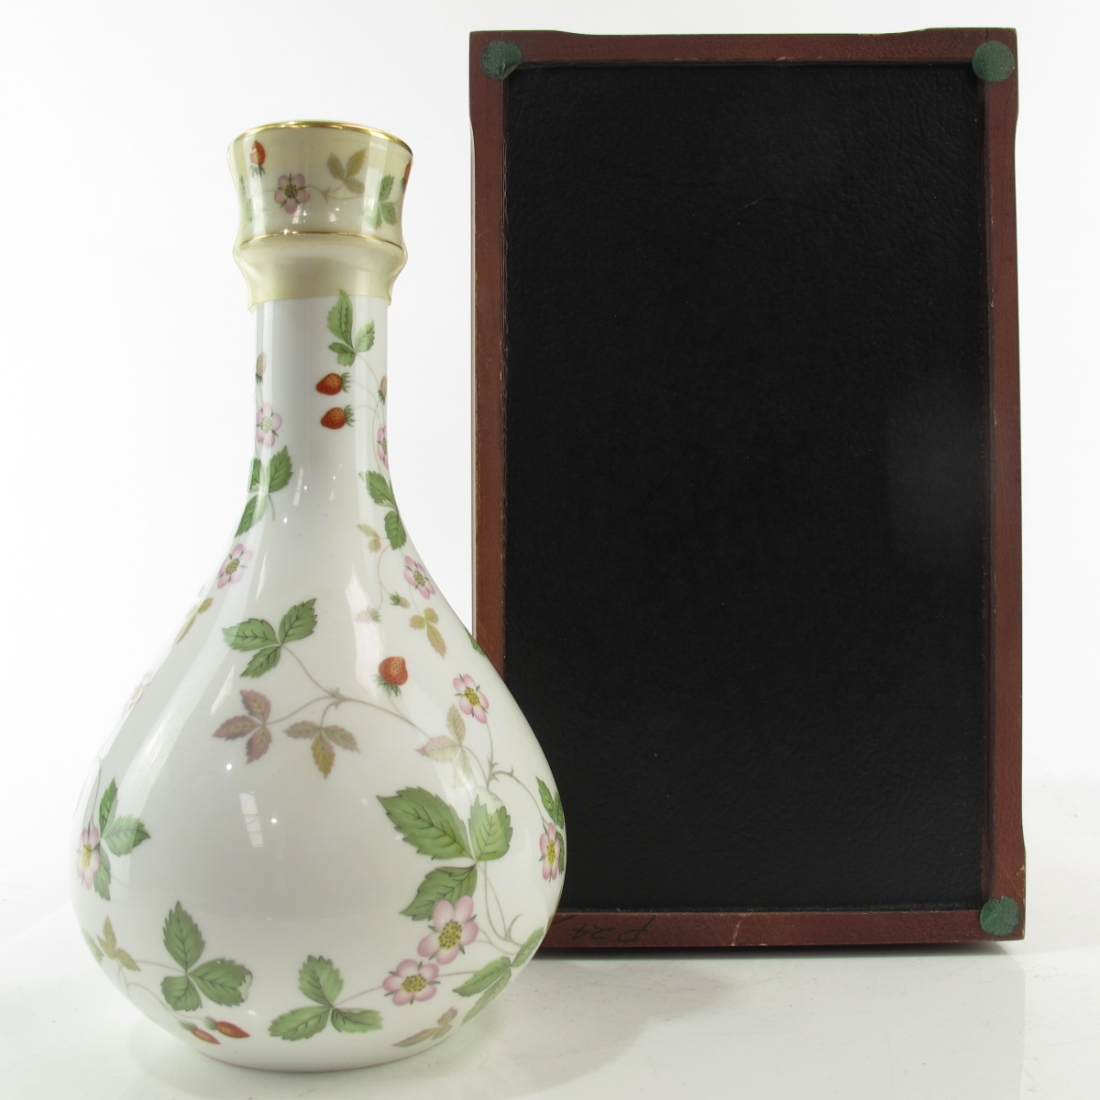 Findlater's 25 Year Old Wedgwood Decanter